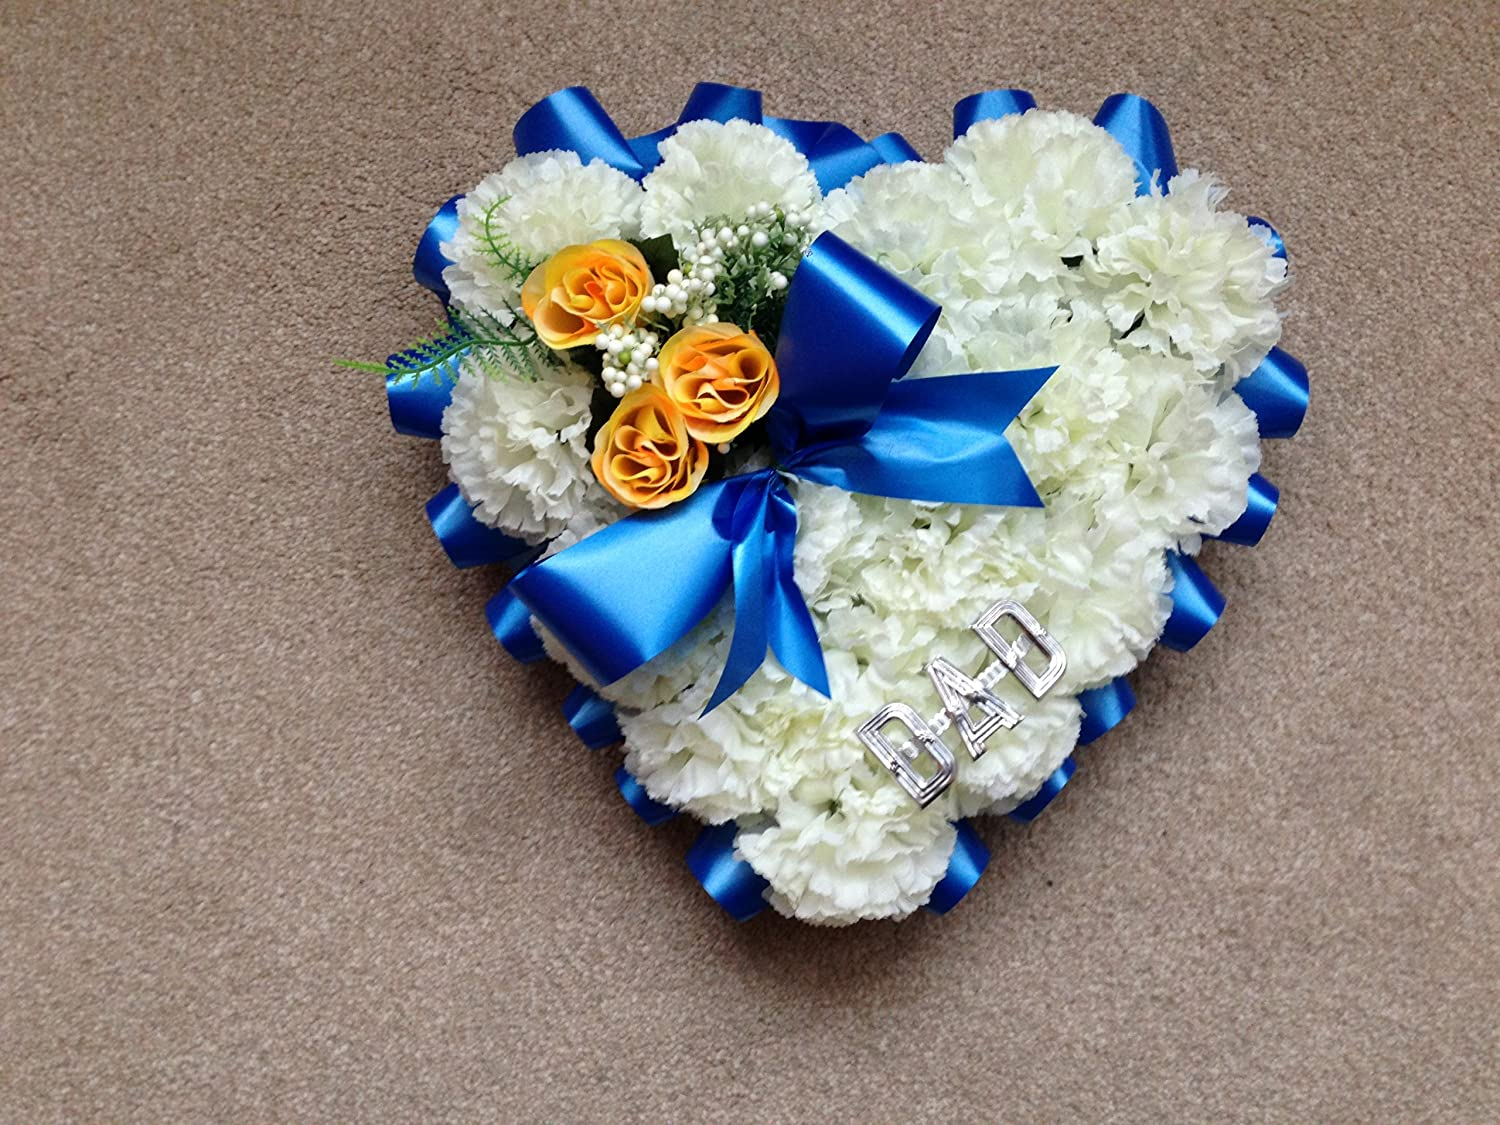 Silk flower heart dad blue bow funeral floral wreath memorial silk flower heart dad blue bow funeral floral wreath memorial tribute amazon kitchen home izmirmasajfo Image collections